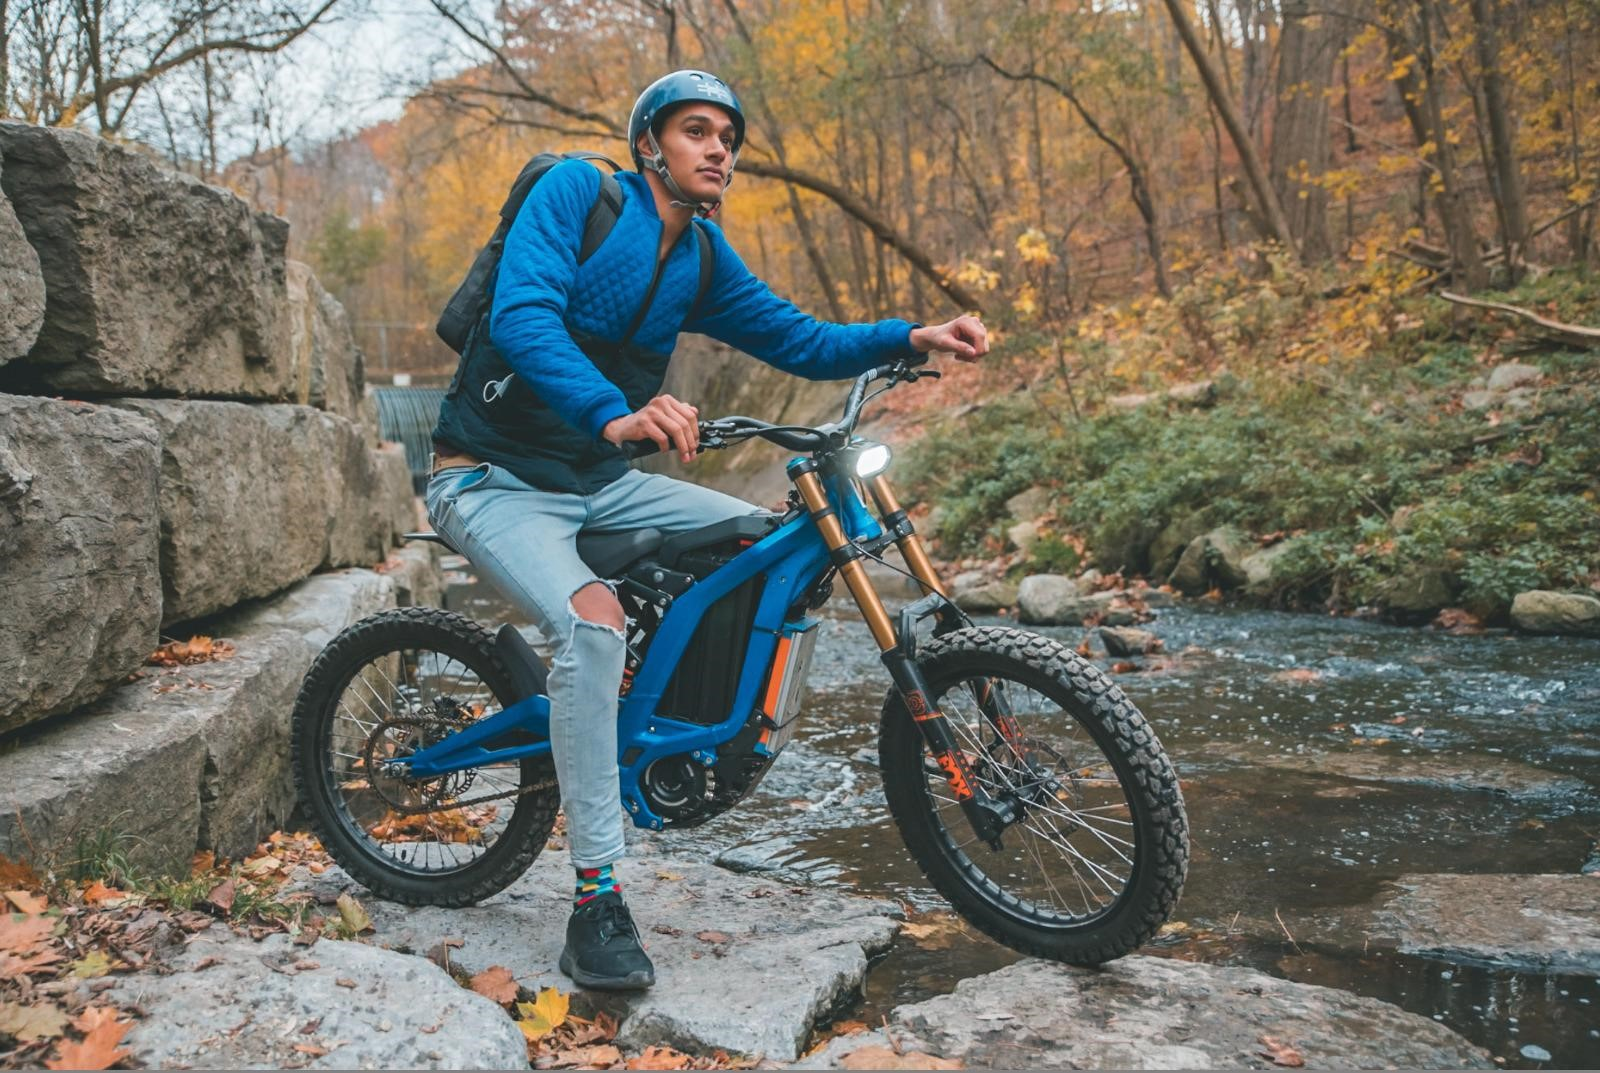 Accelerated Systems Inc. (ASI) And Teznic Inc. (Teznic) Have Collaborated To Bring The Ebike Community The Fastest, Longest Range, And Highest Torque Sur-Ron Ebike On The Market.